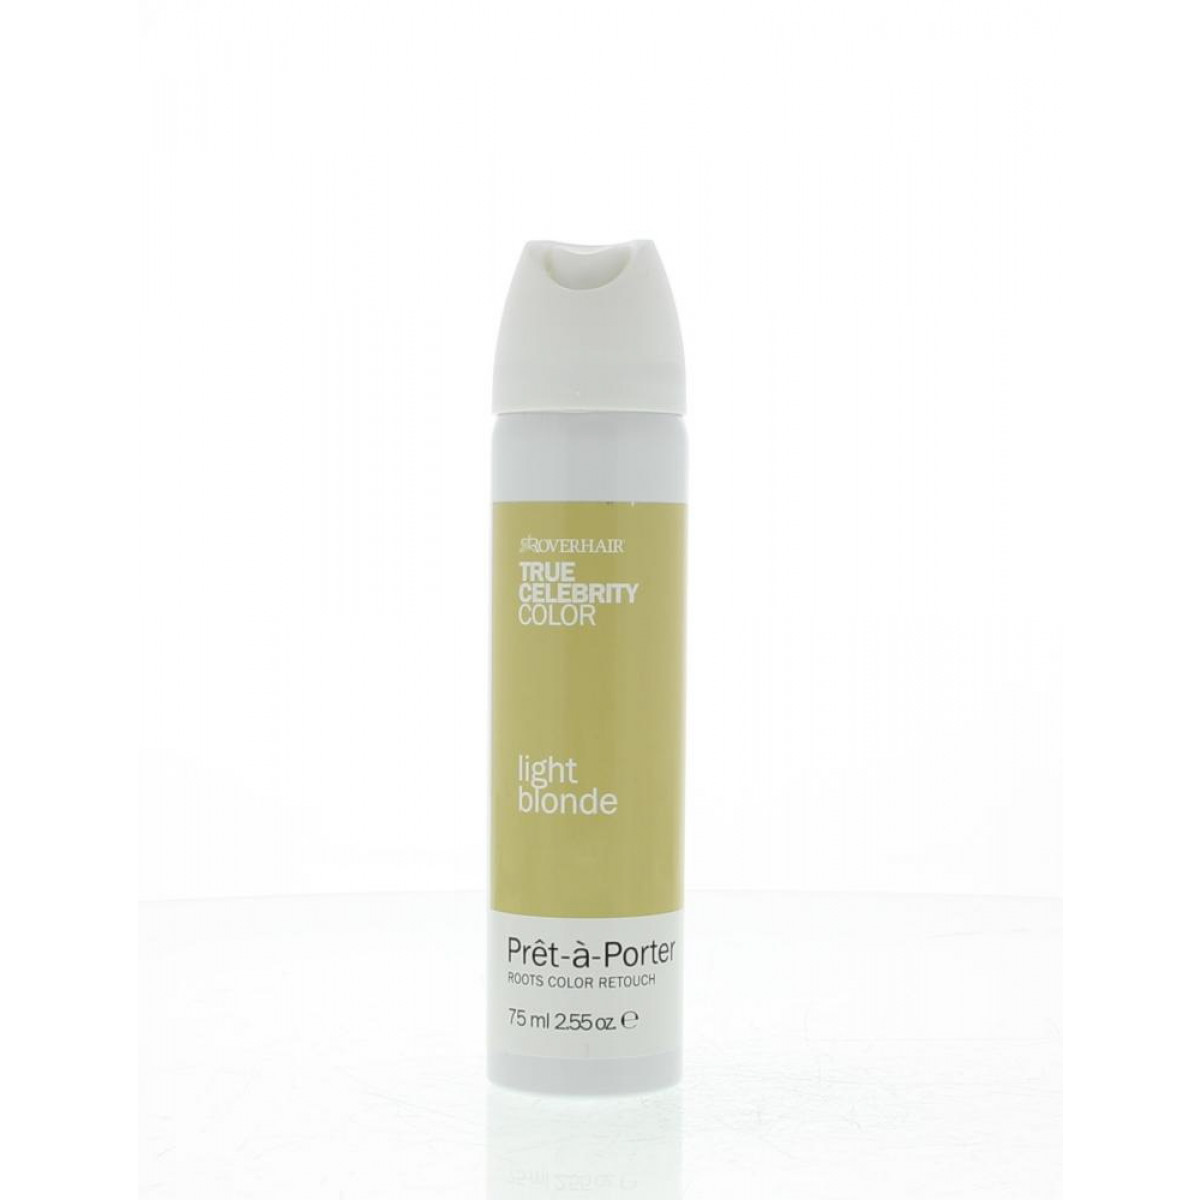 Roverhair True Celebrity Color Roots Color Retouch Spray Light Blonde 75ml Image